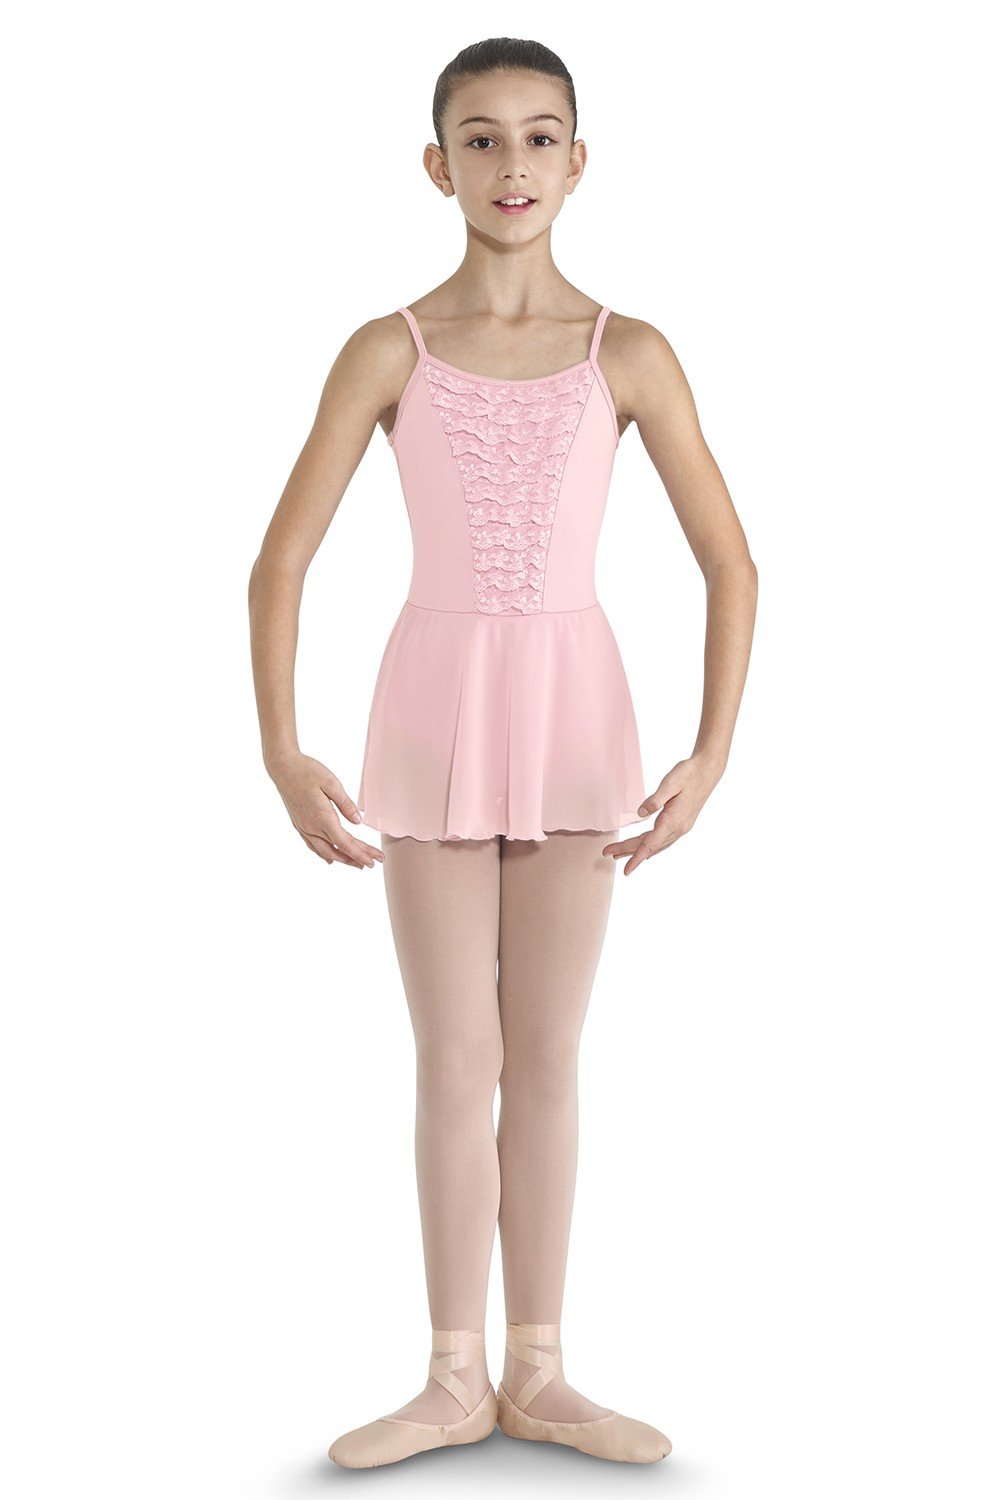 Gomeda Children's Dance Leotards